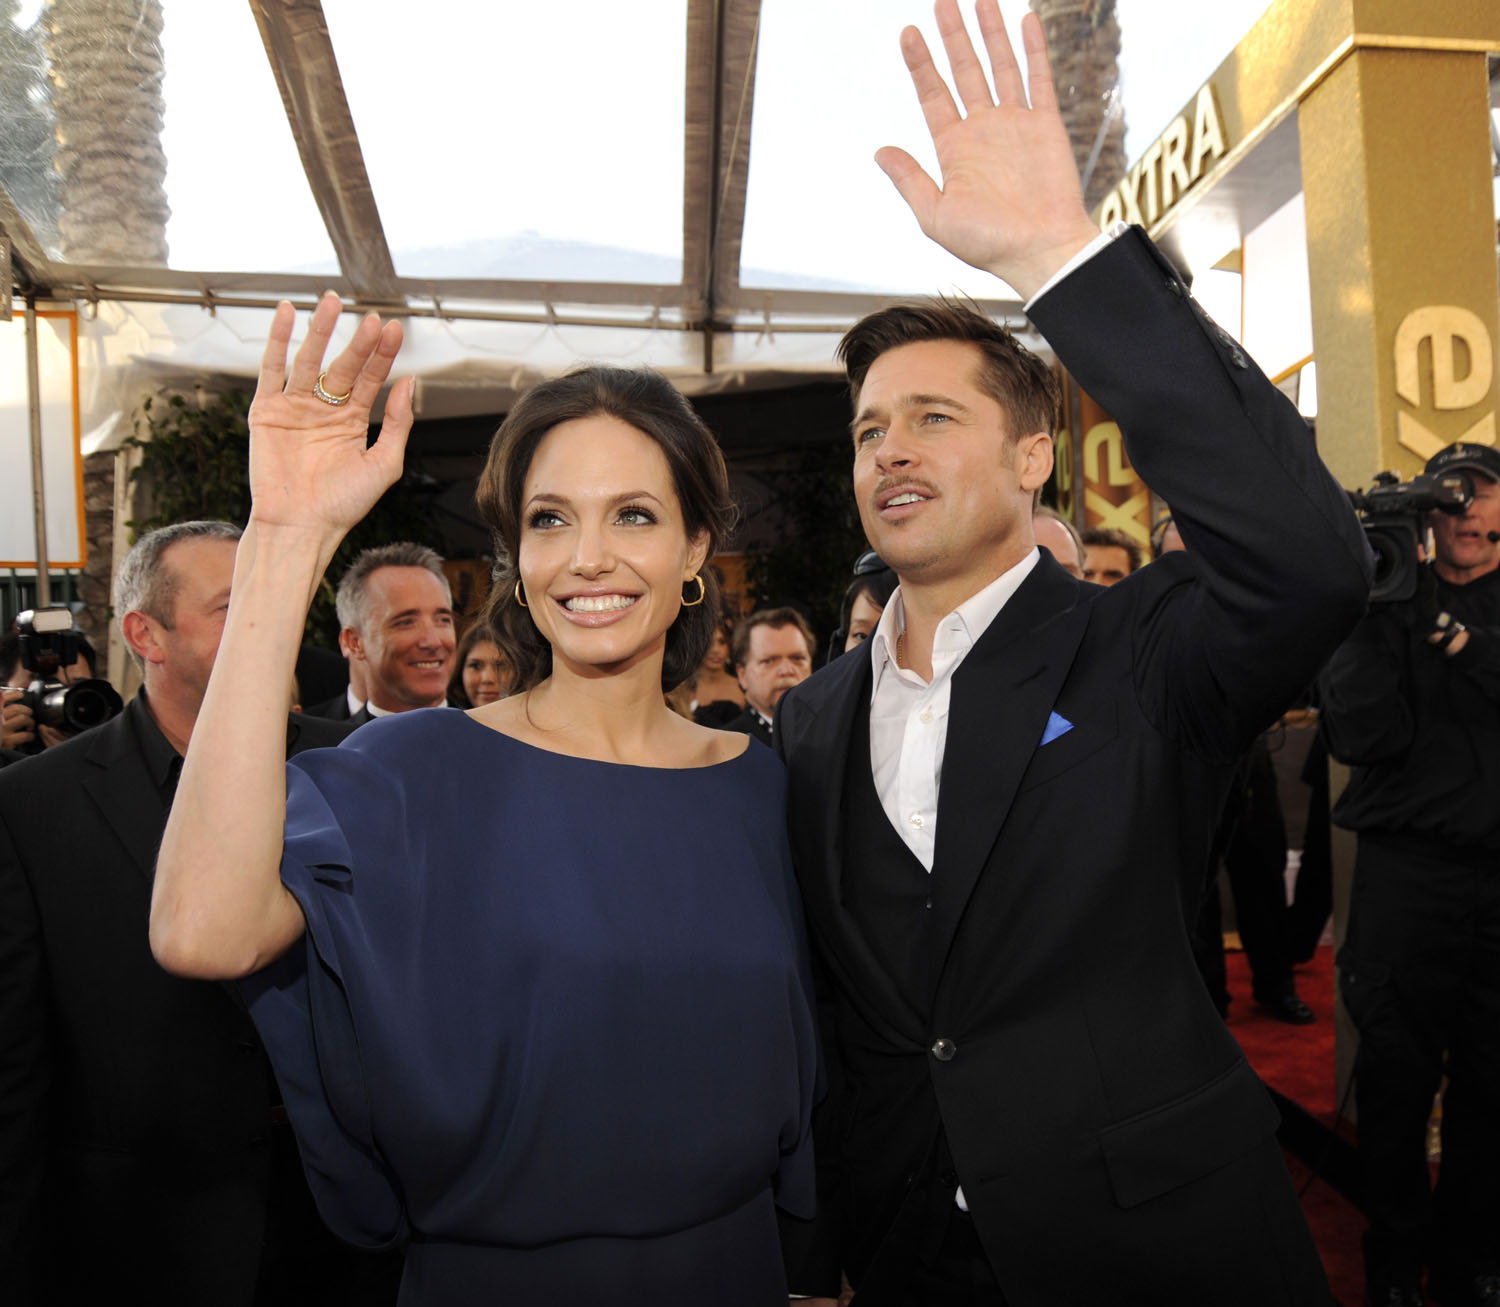 TNT/TBS Broadcasts 15th Annual Screen Actors Guild Awards – Red Carpet